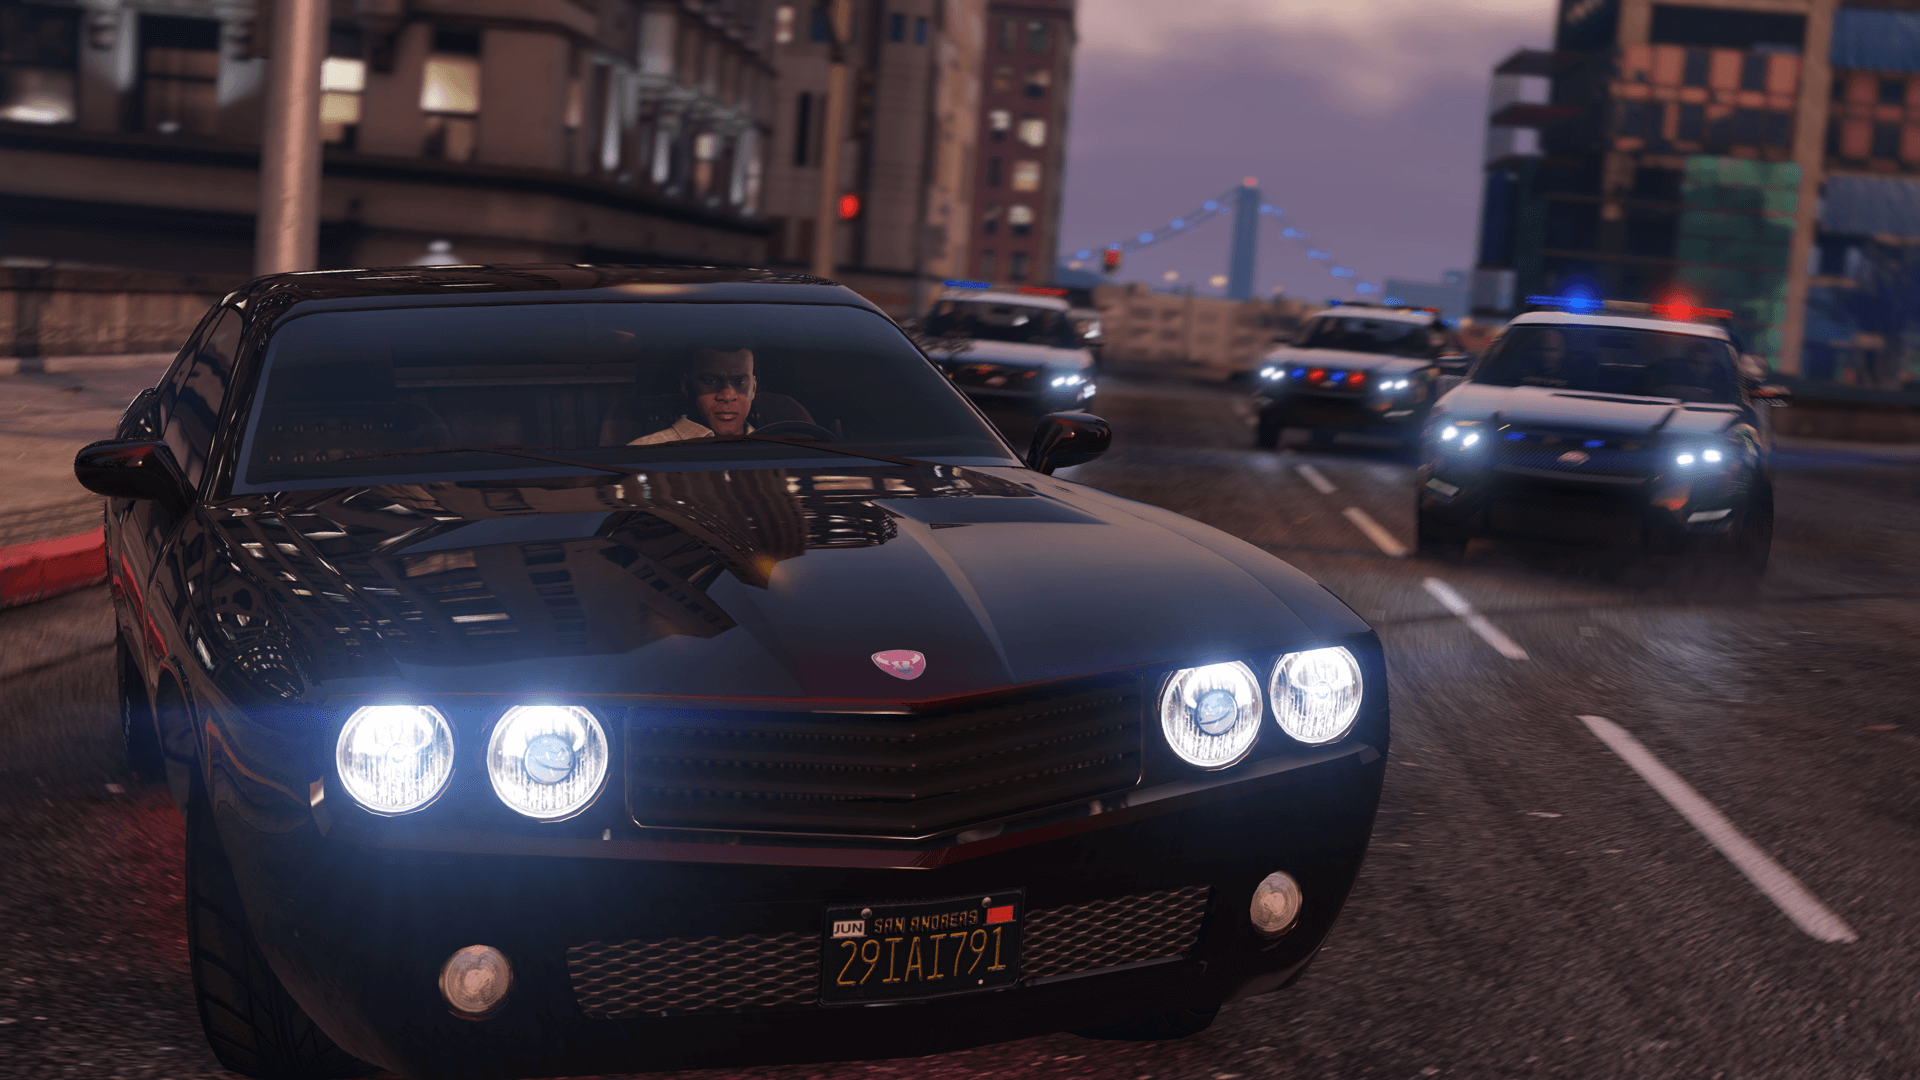 Grand Theft Auto Game Gets Flak from State Lawmakers